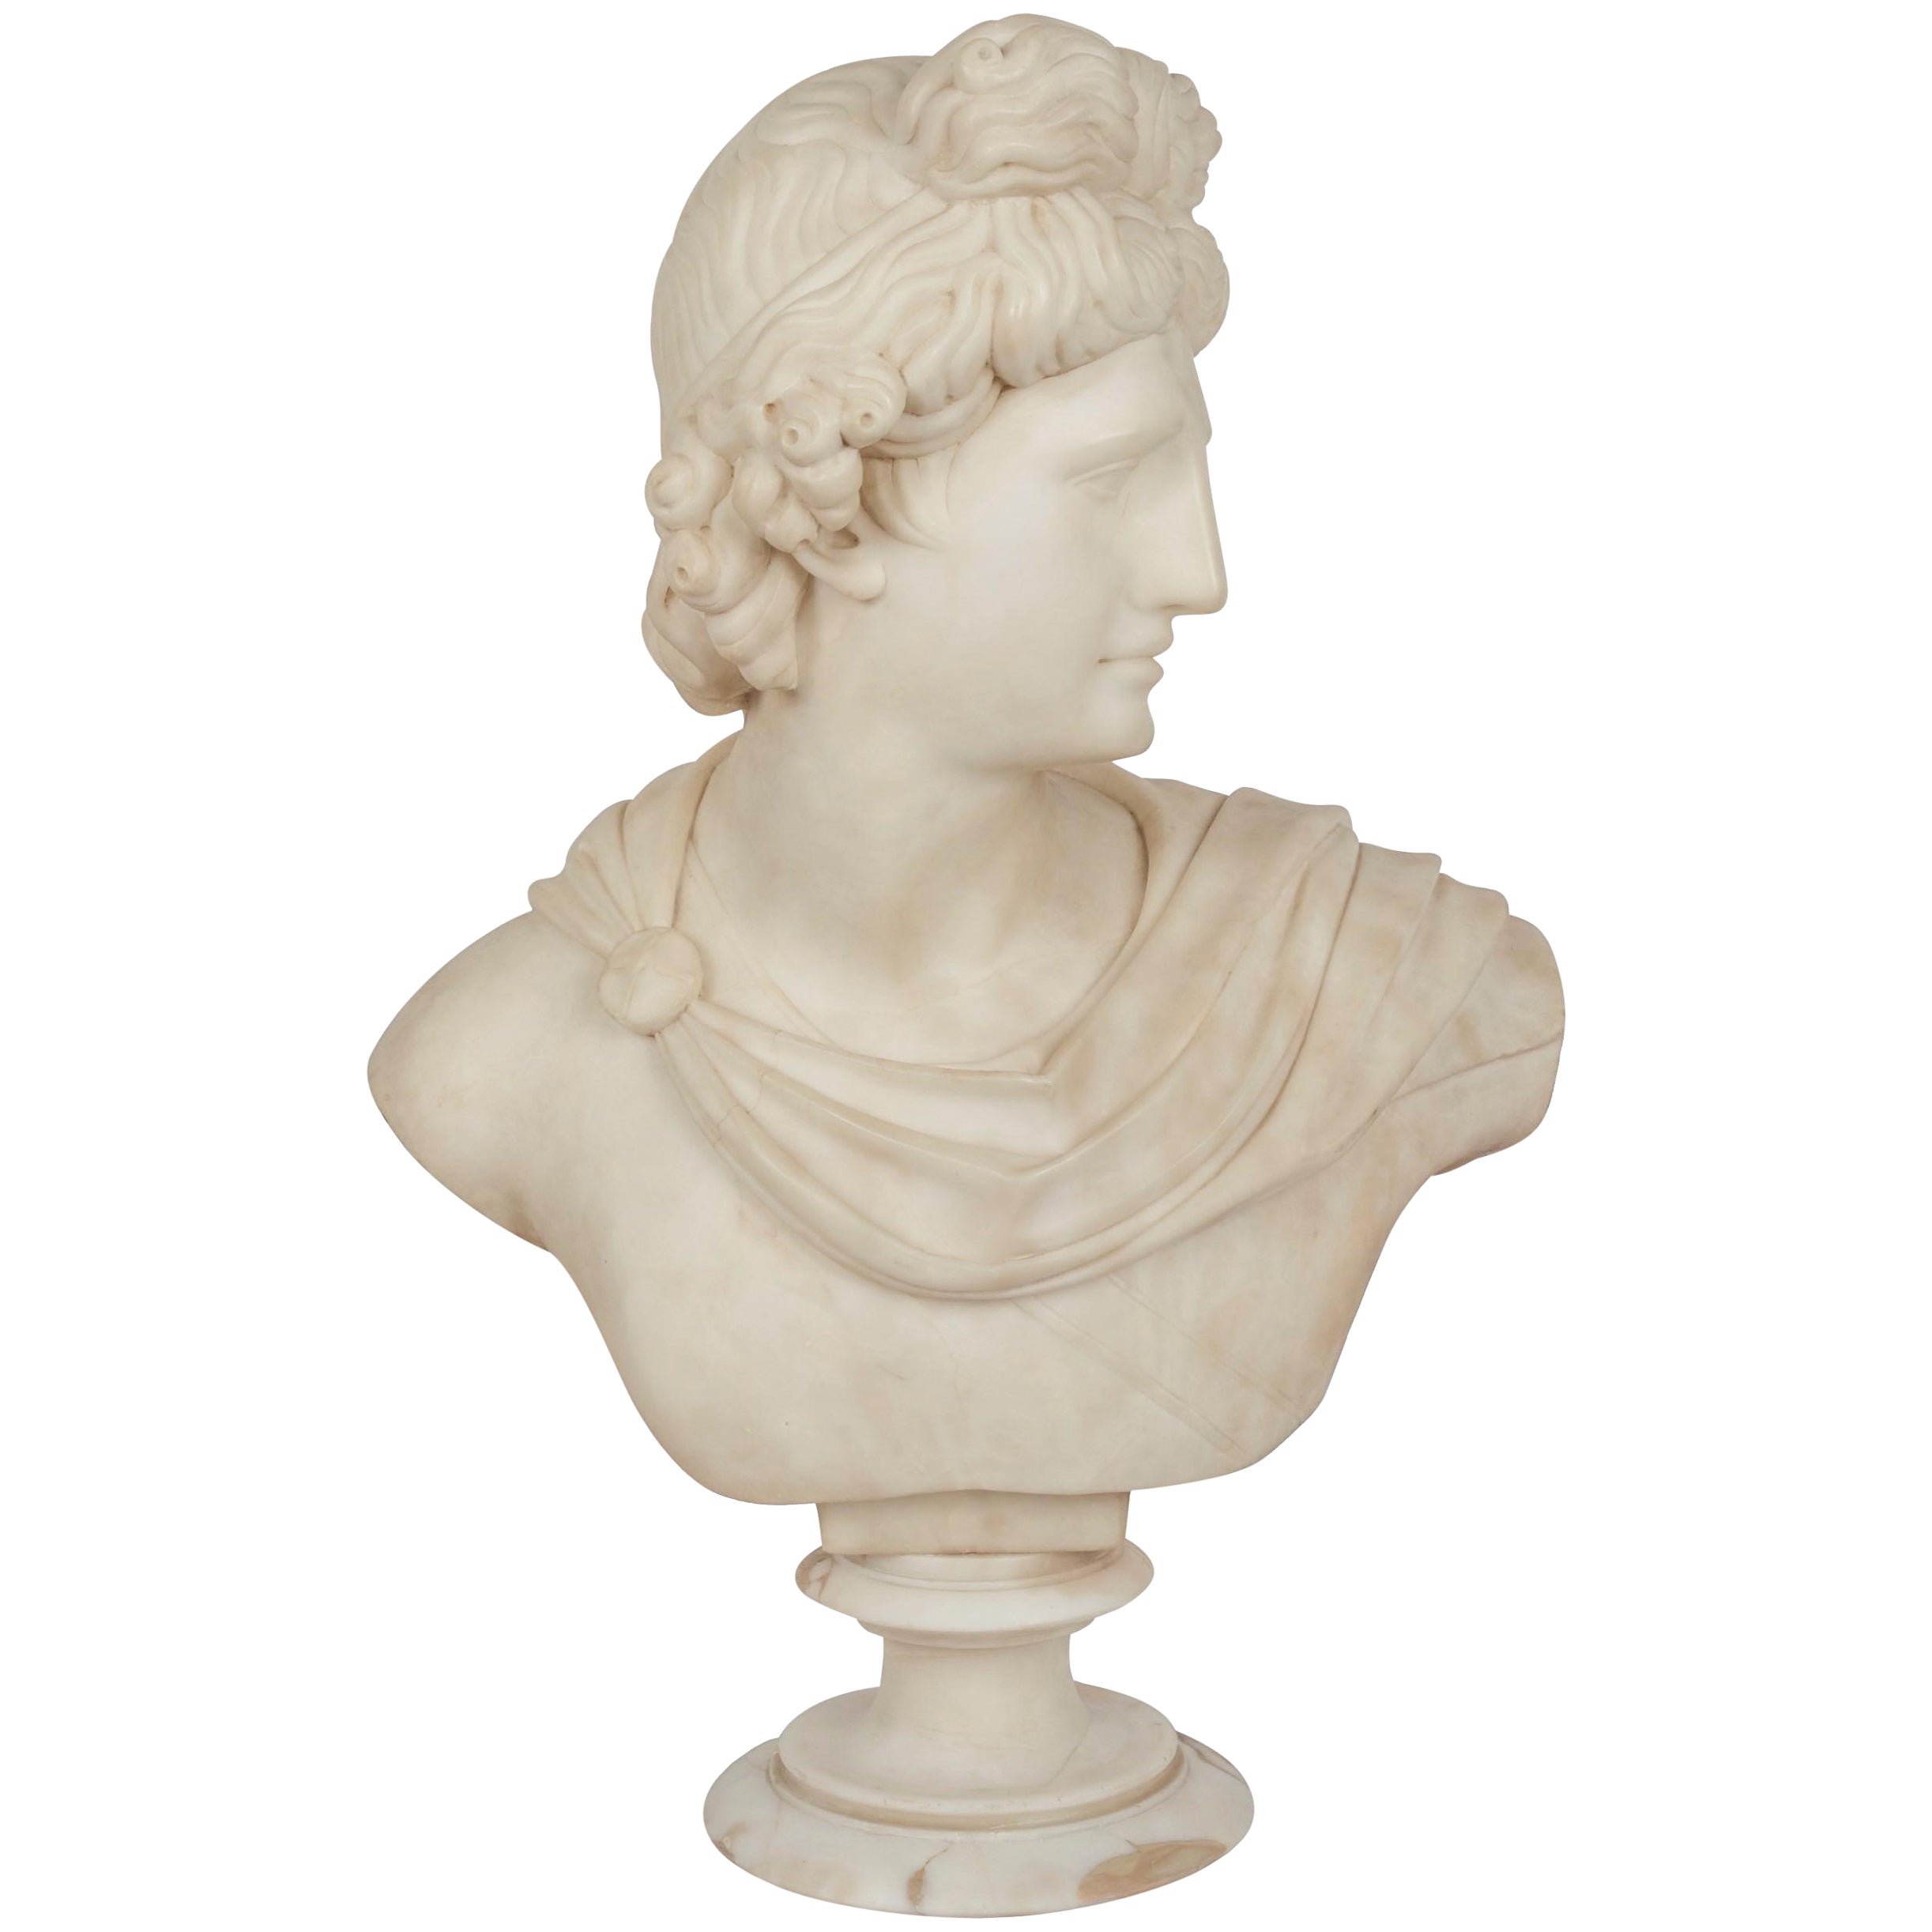 Grand Tour Alabaster Sculpture Bust of Apollo Belvedere, 19th Century